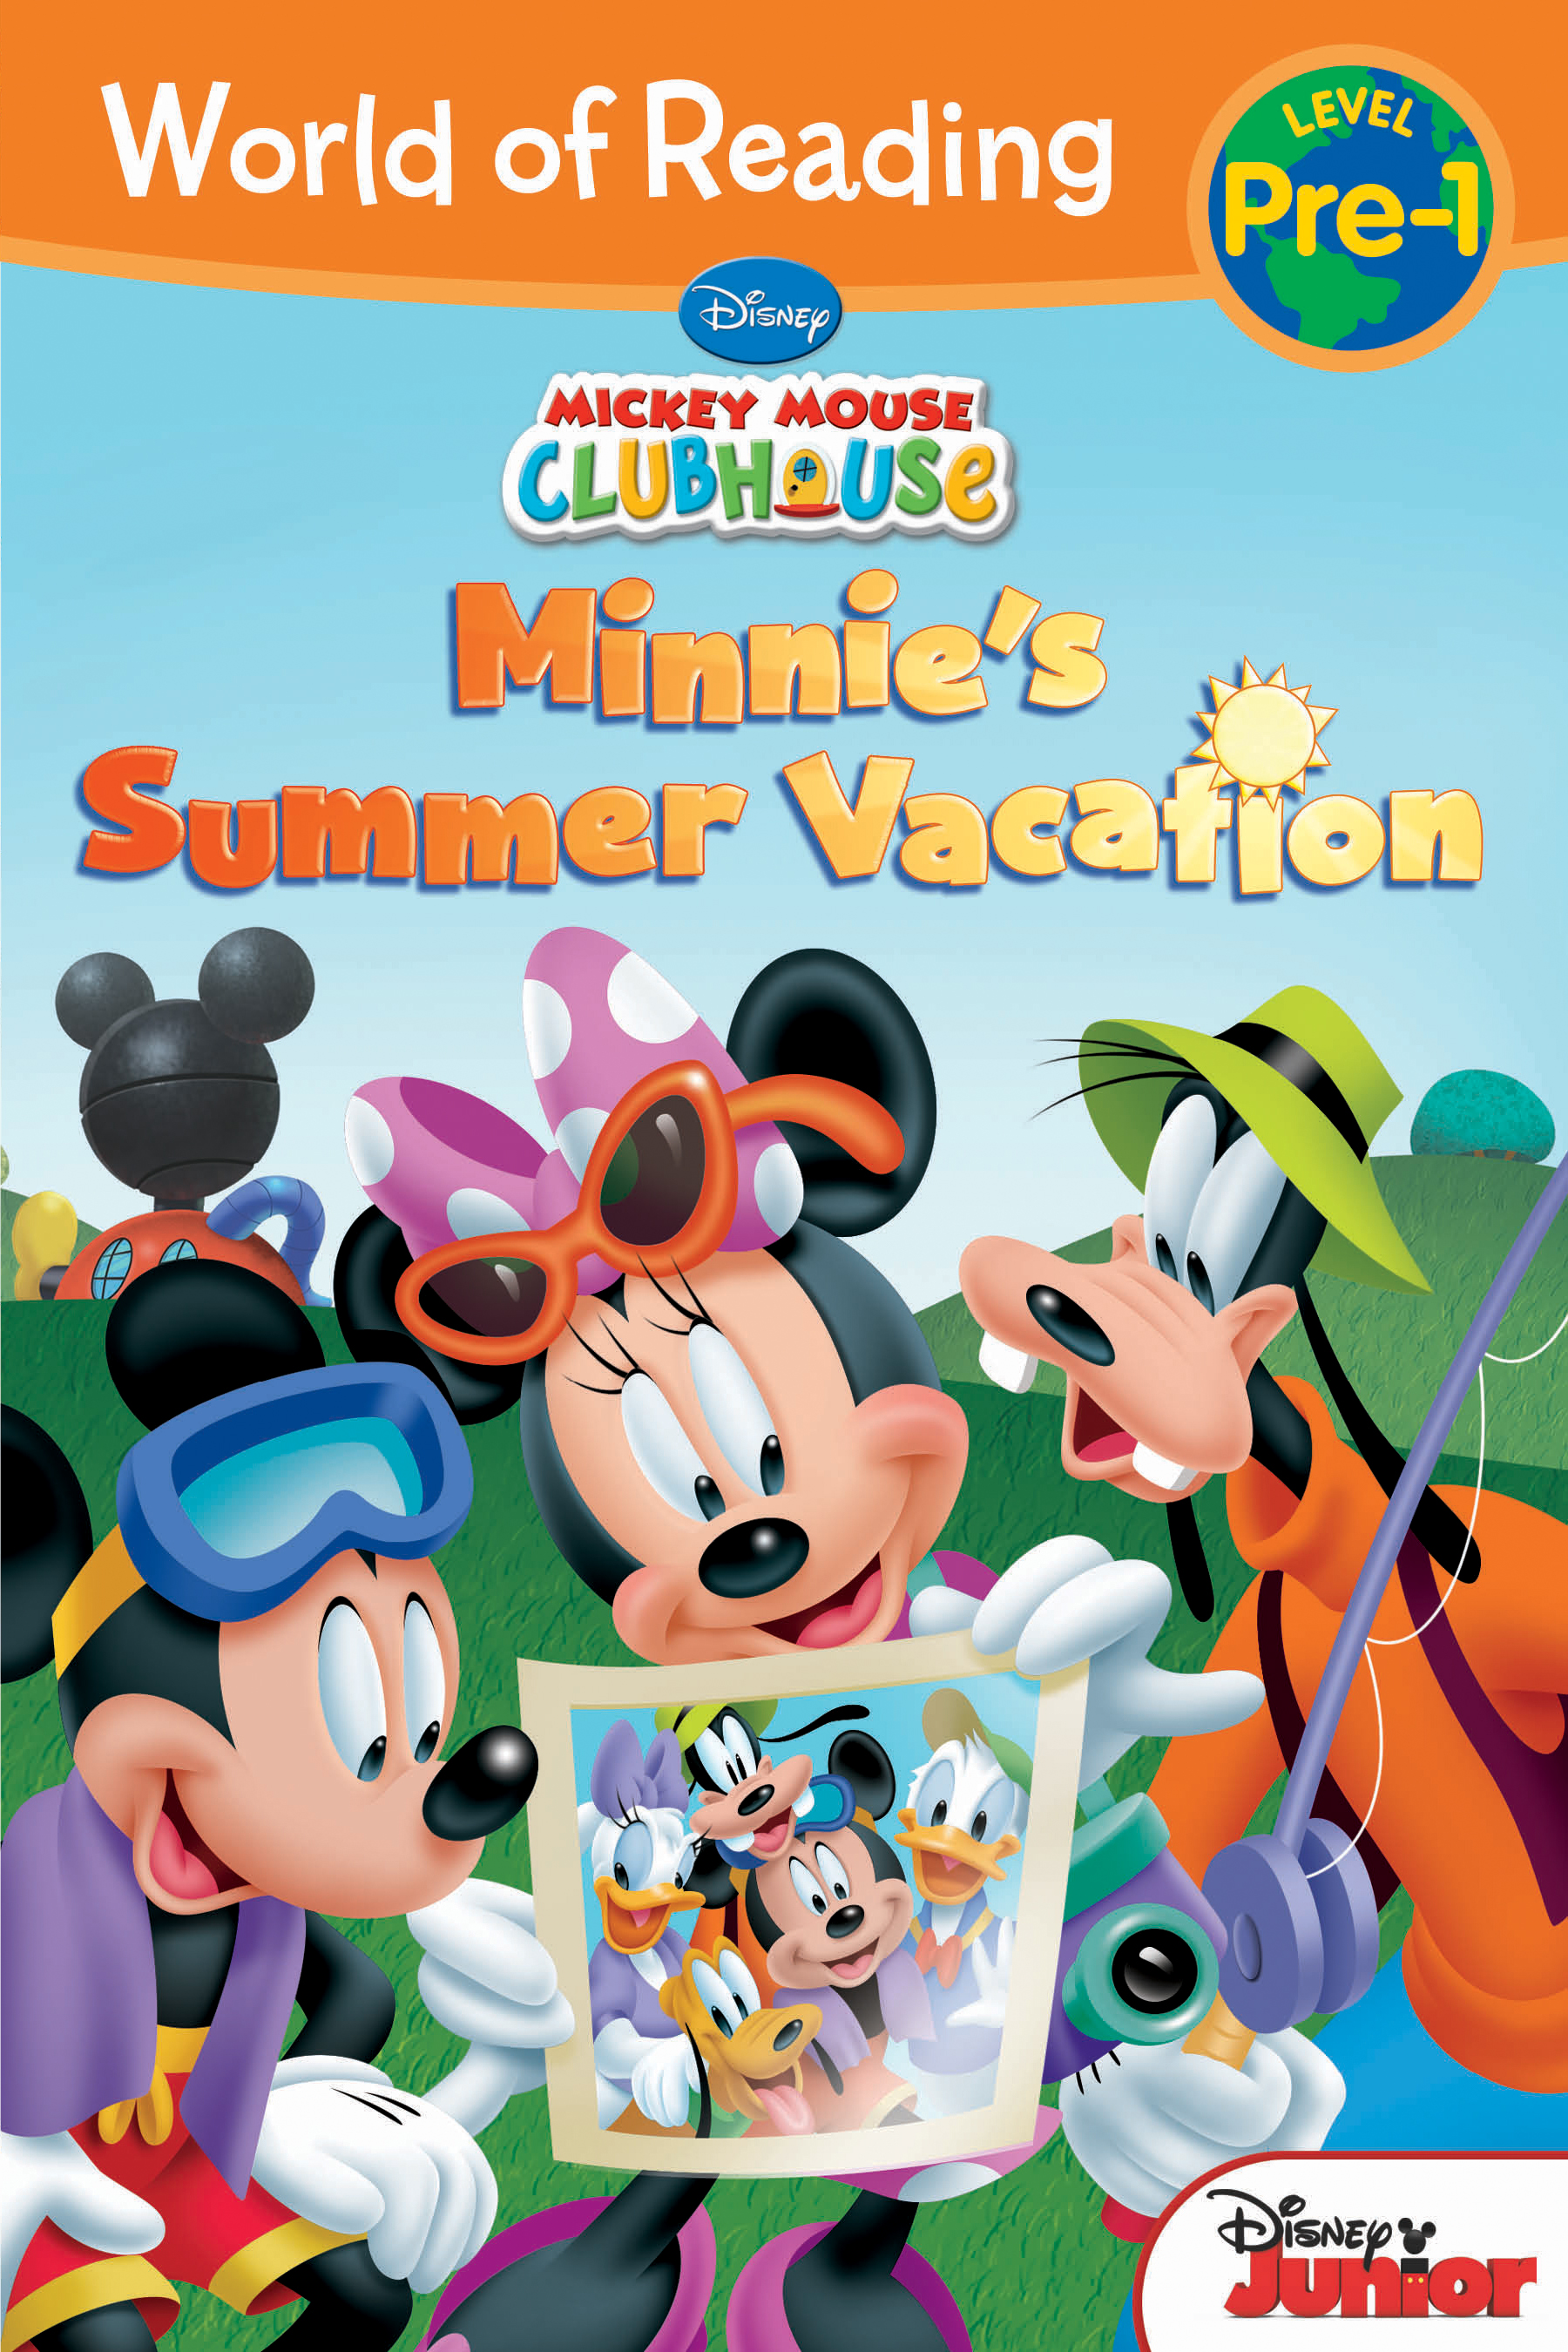 World of Reading:  Mickey Mouse Clubhouse: Minnie's Summer Vacation